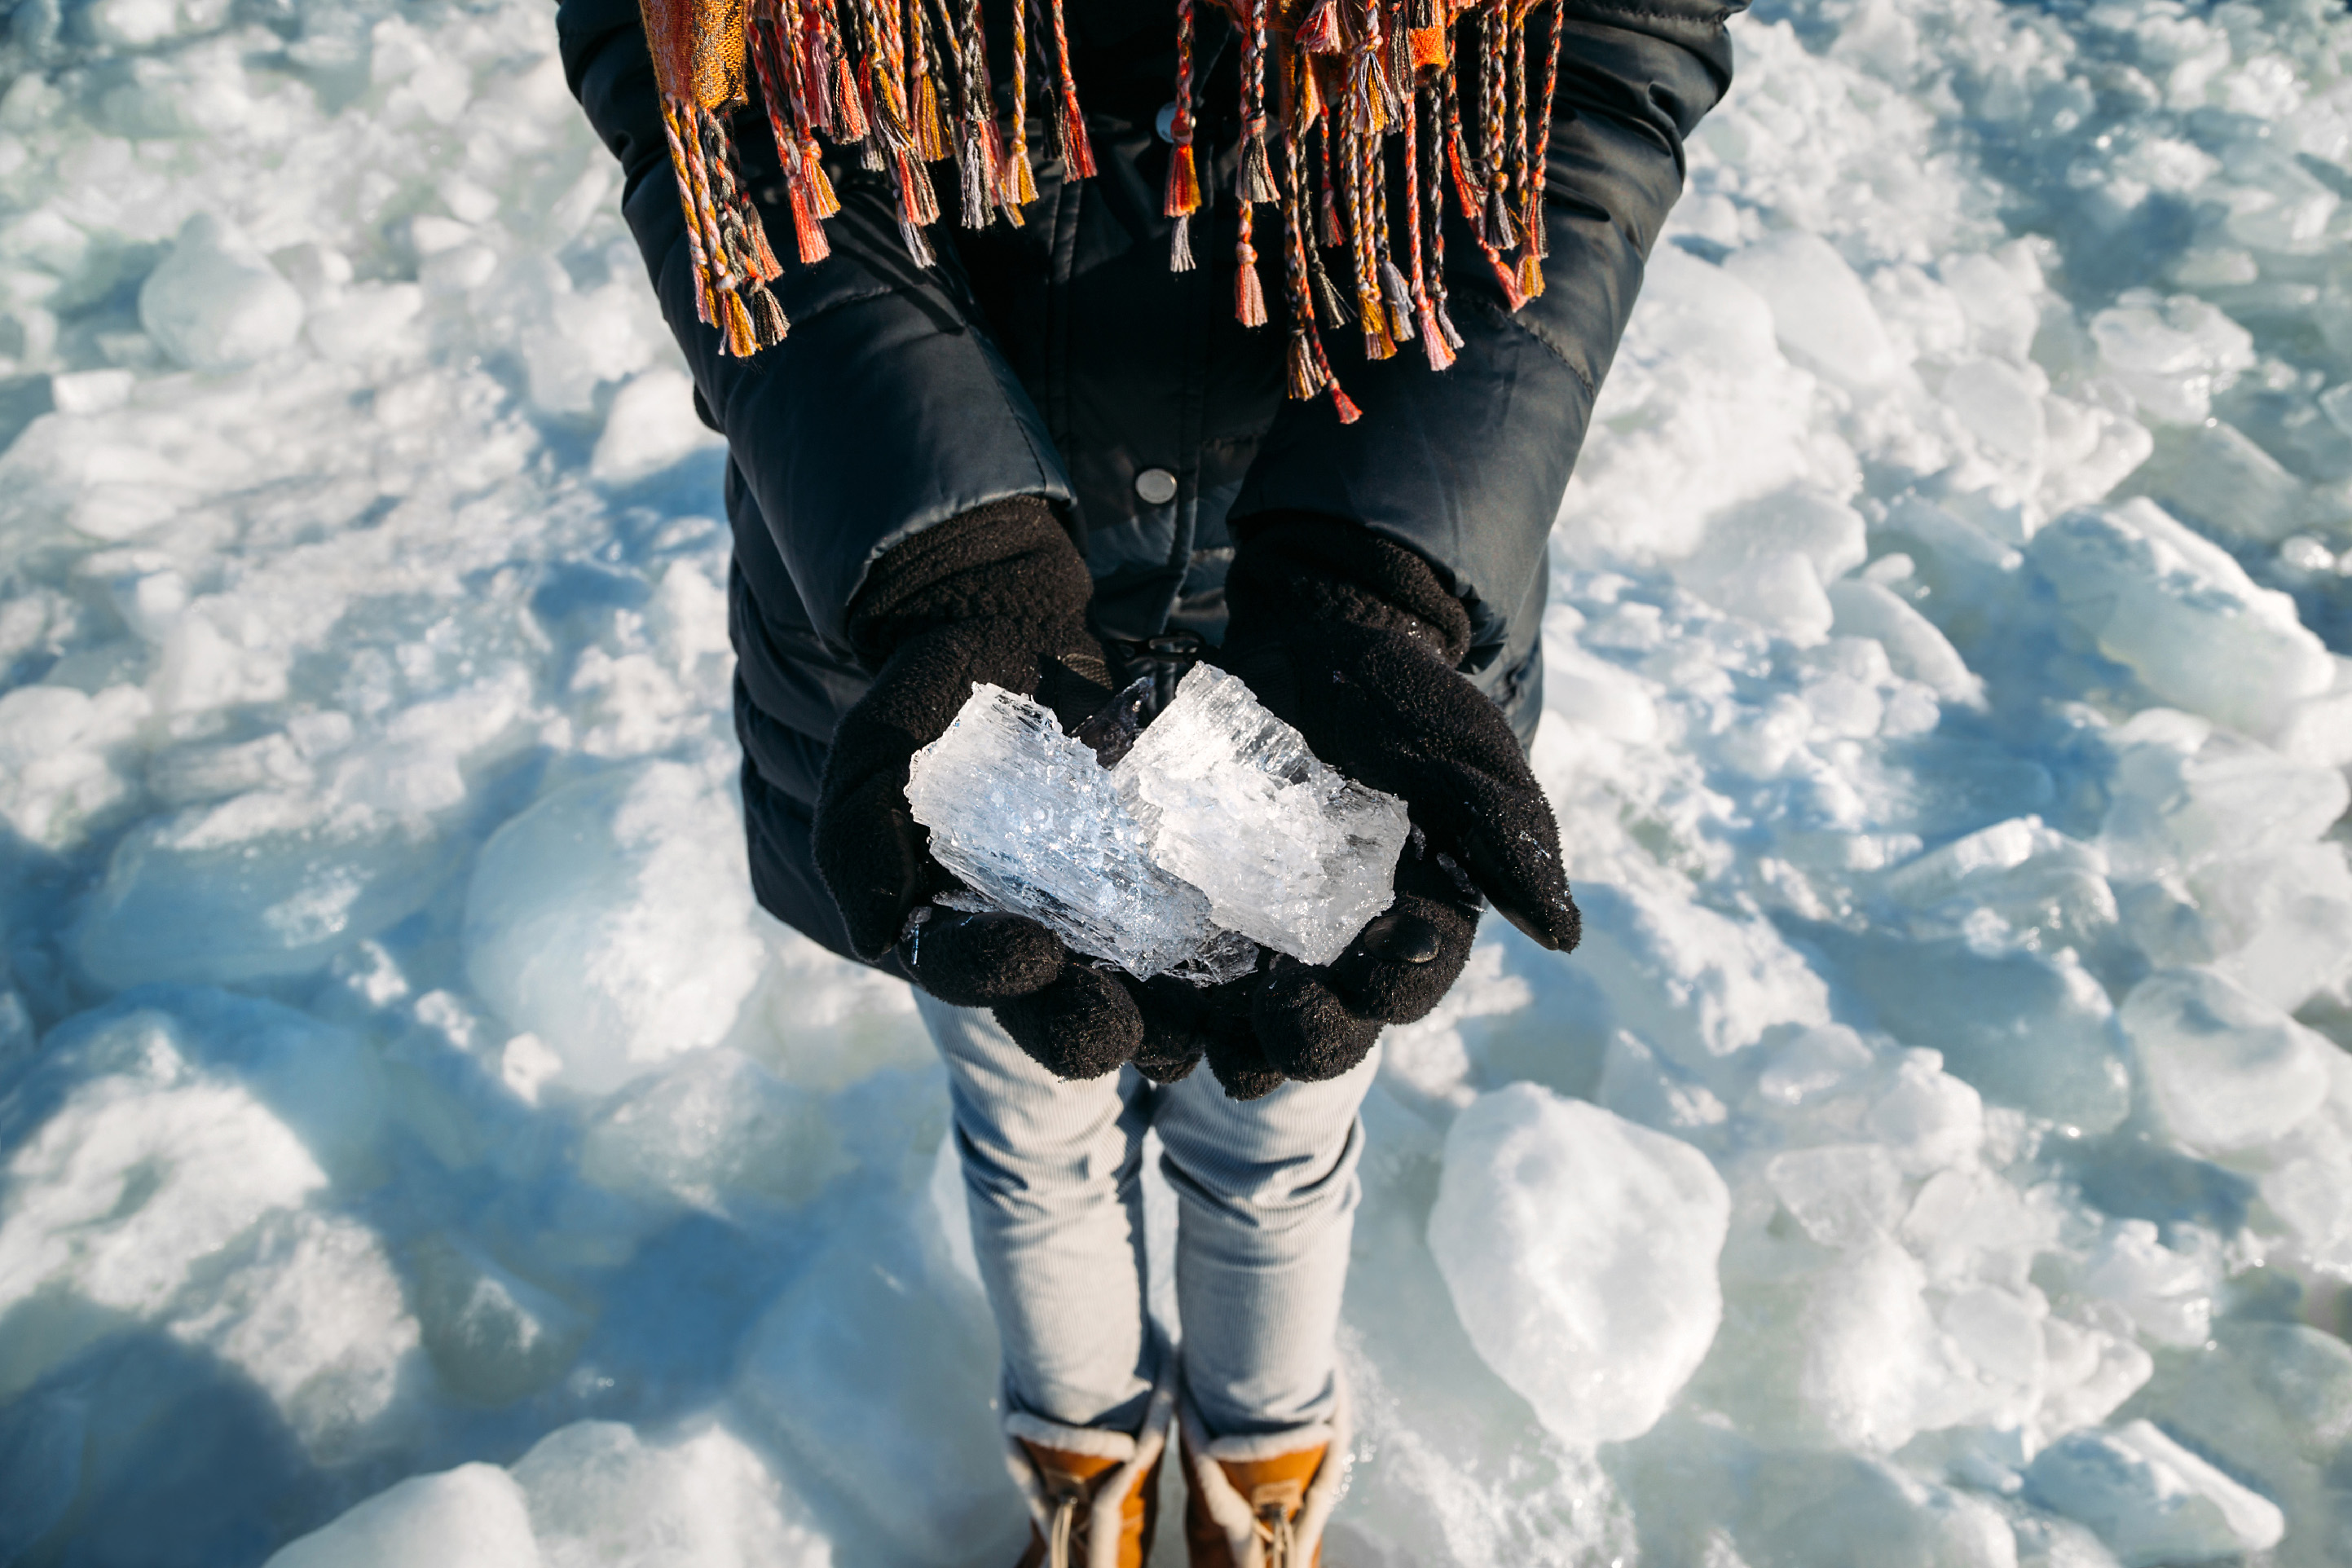 Scientists in China have created a new flexible form of ice. — Photography IB photo / Getty Images via ETX Studio